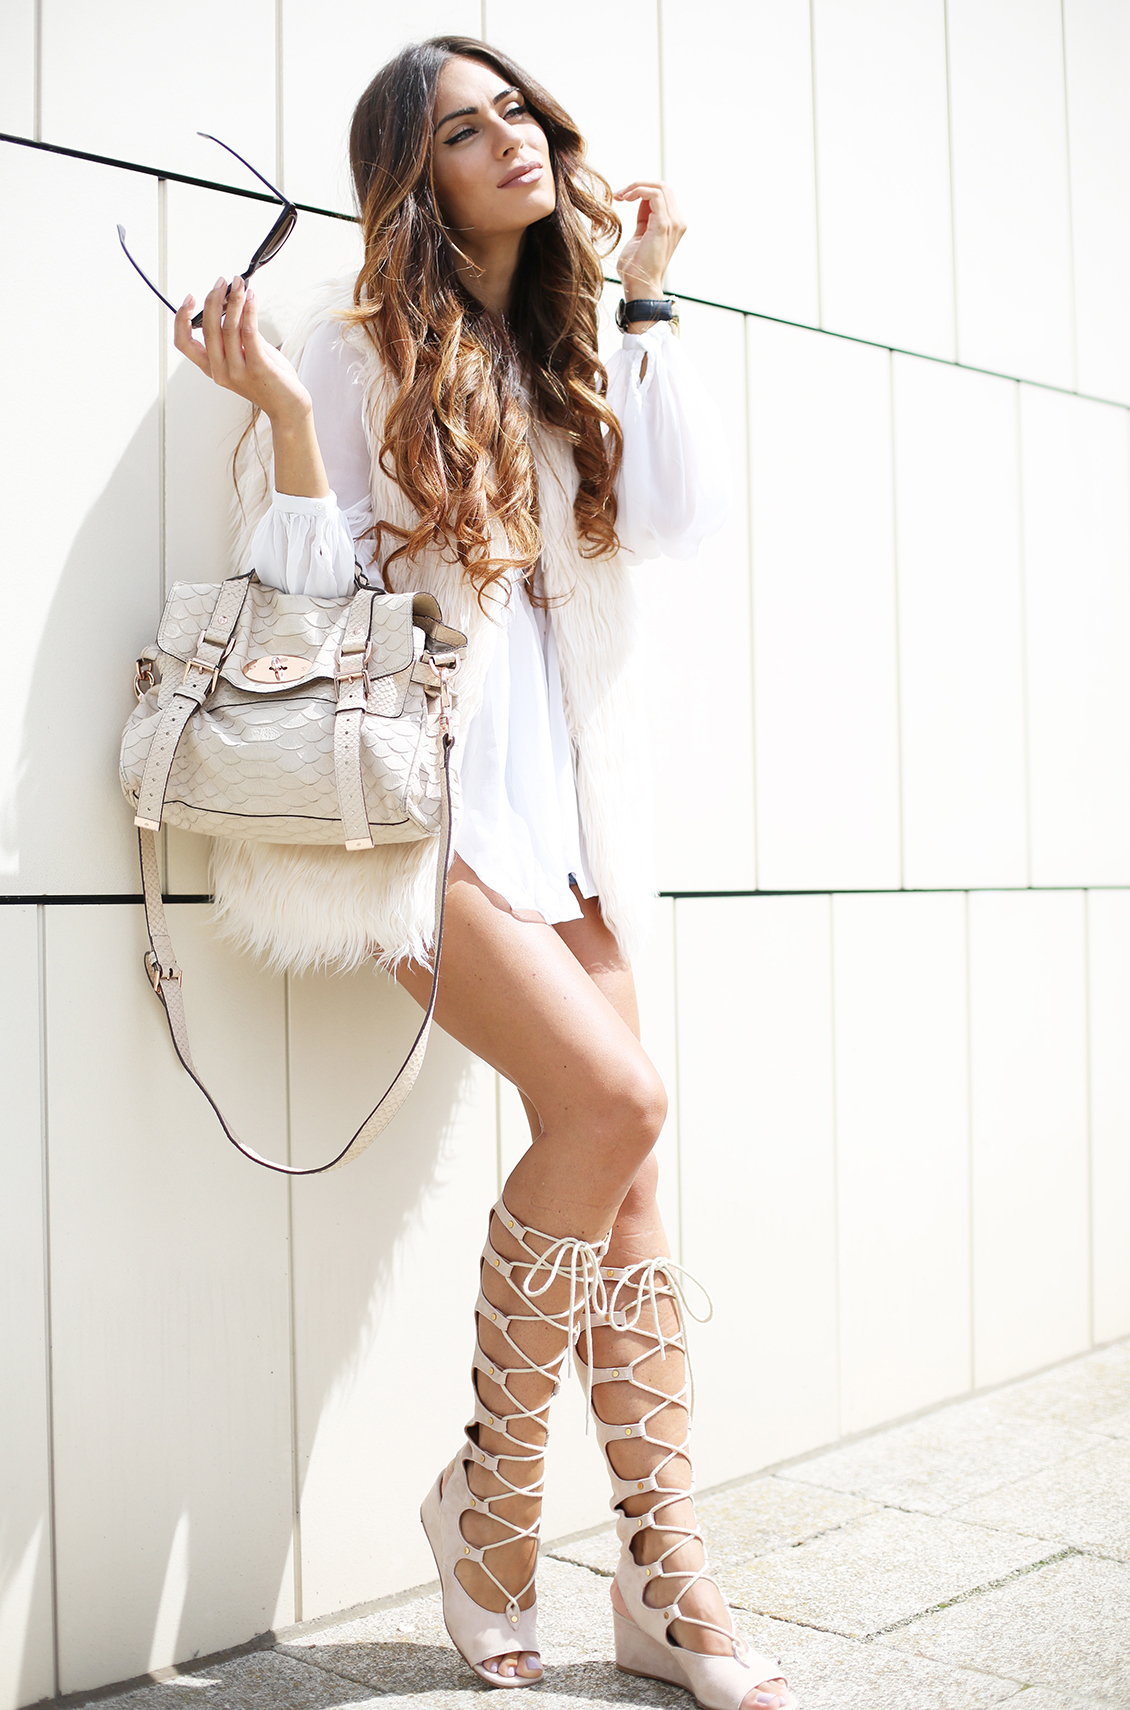 Gladiator Heels With Dress